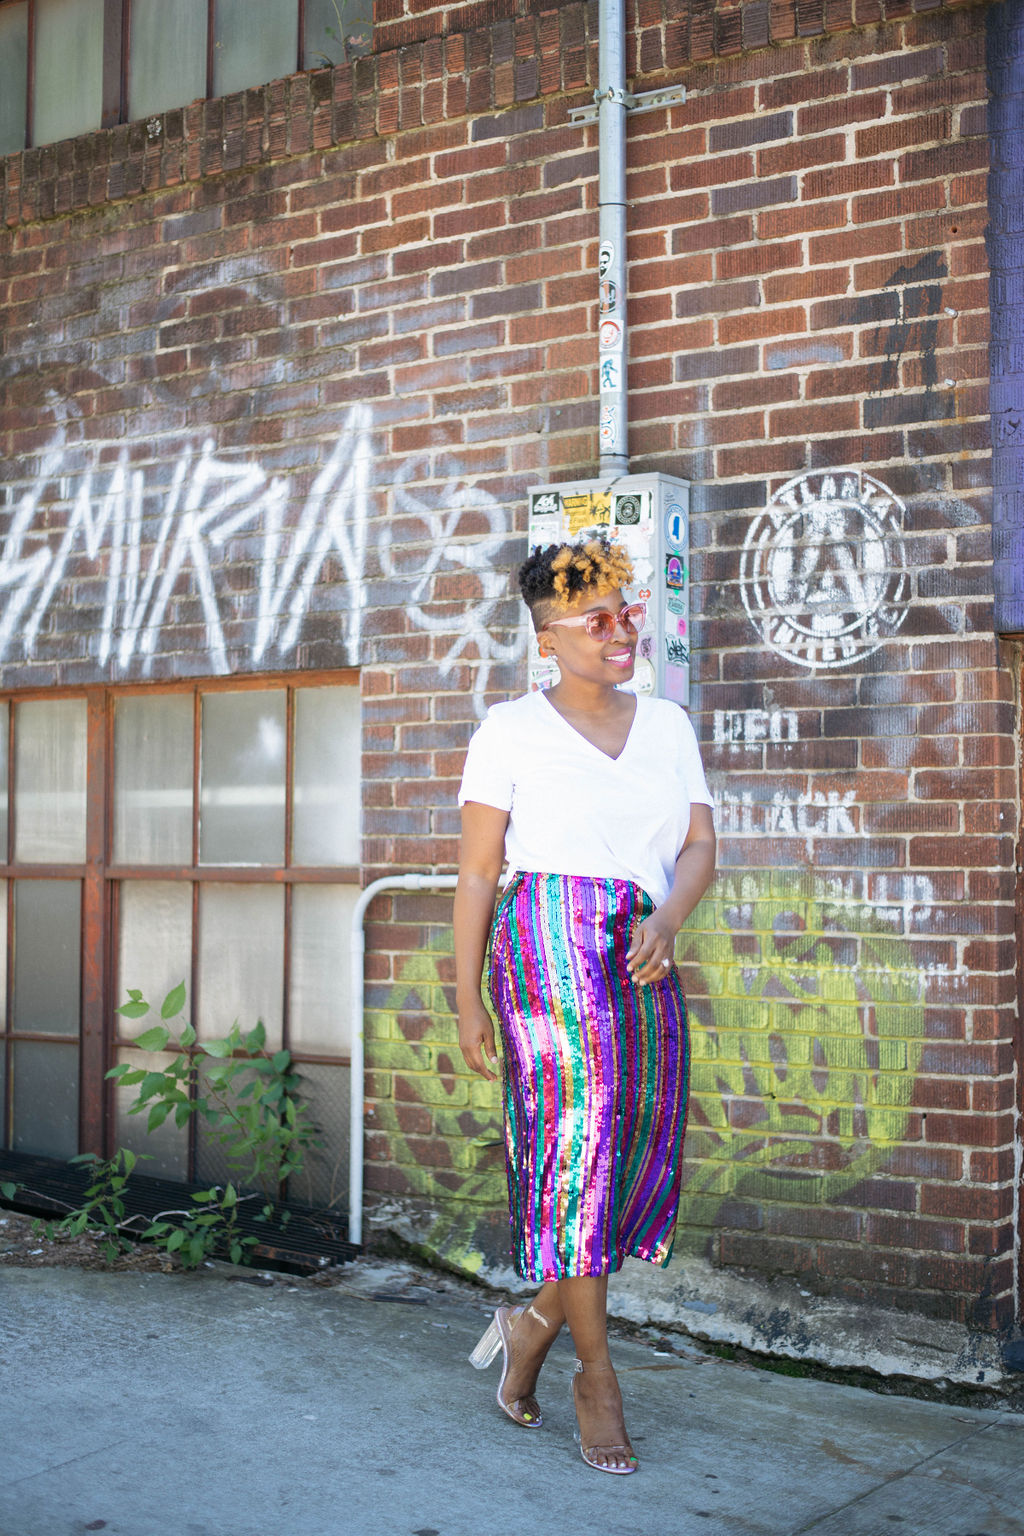 Sequin skirt street style, Personal Stylist, Top Atlanta Blogger, melodiestewart.com